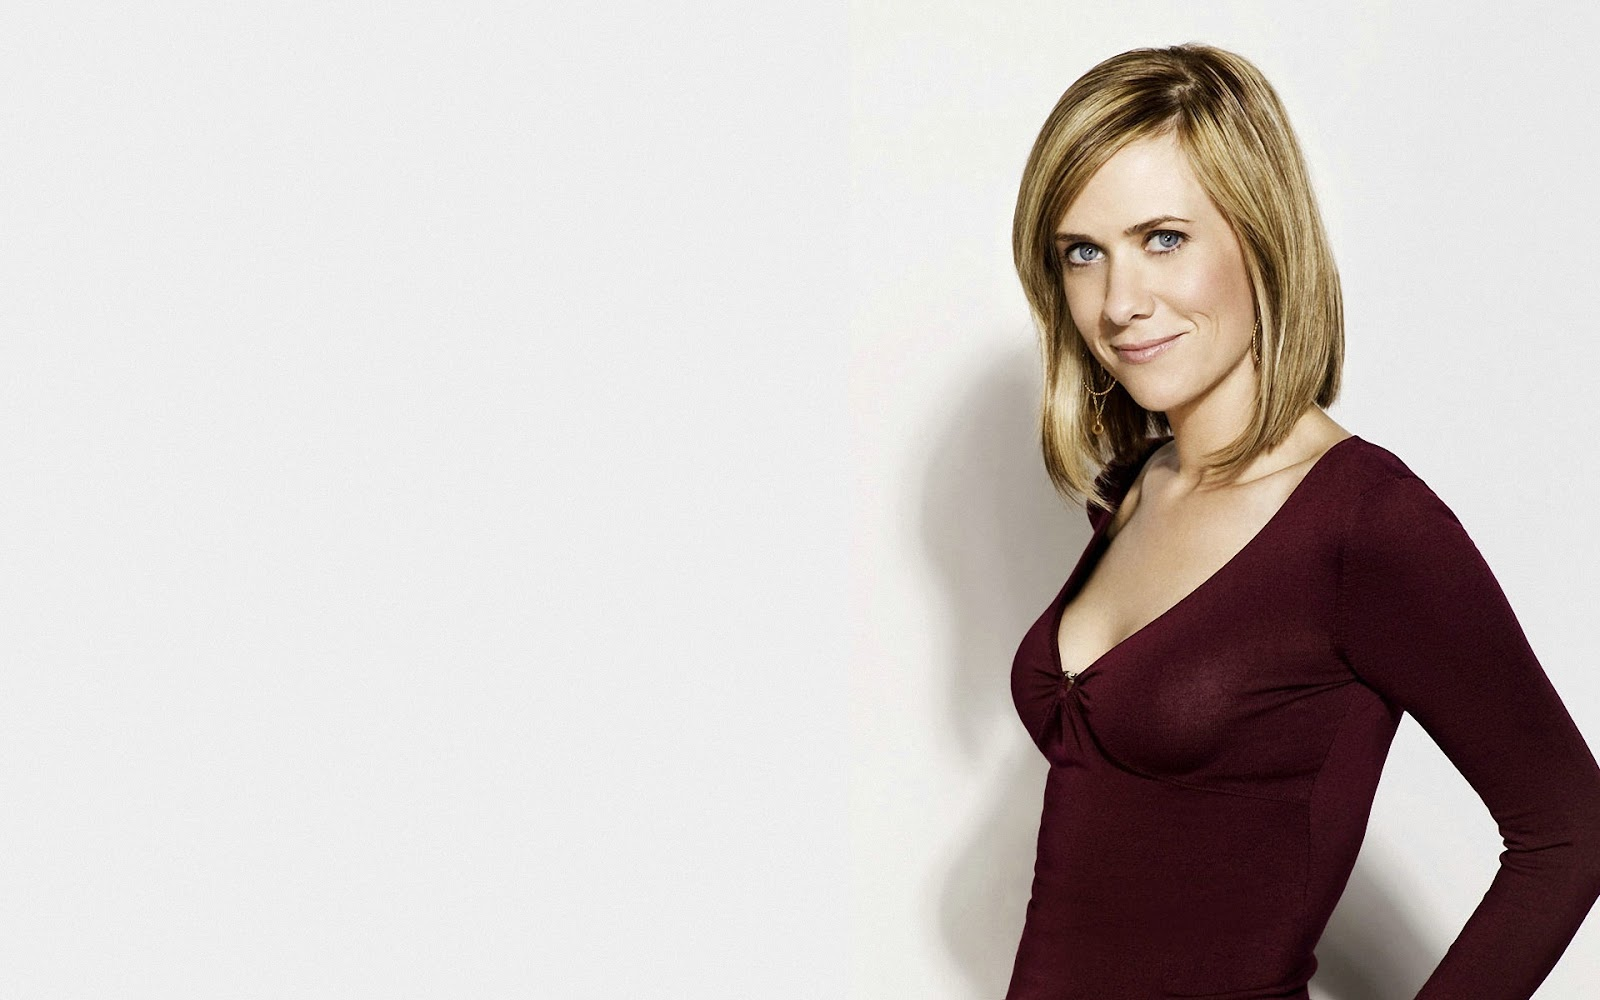 Kristen Wiig Hd Wallpapers